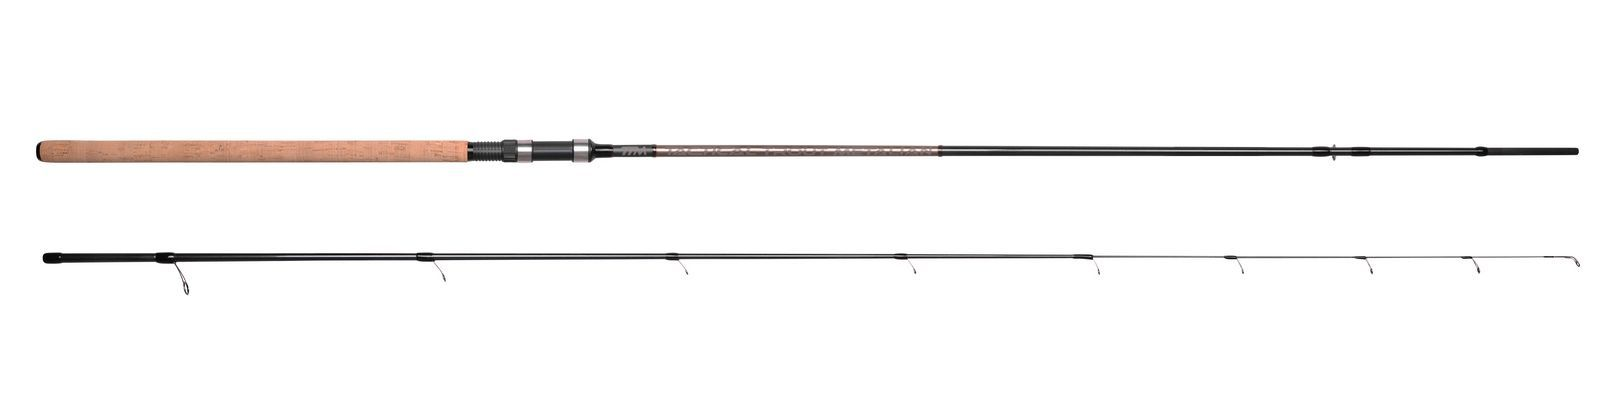 Trout Master Tactical Trout Metalian